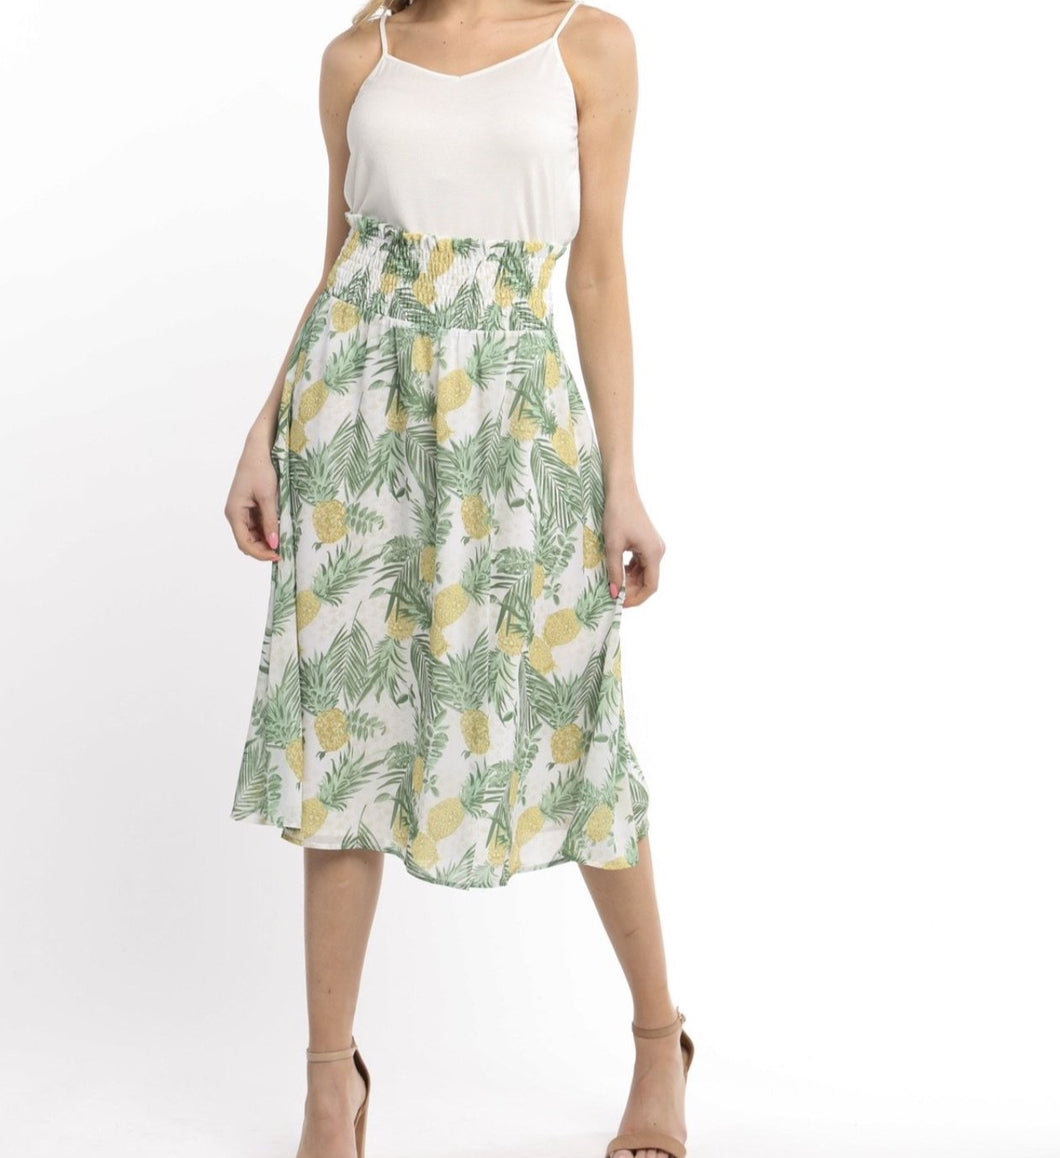 Boho Pineapple Print Skirt